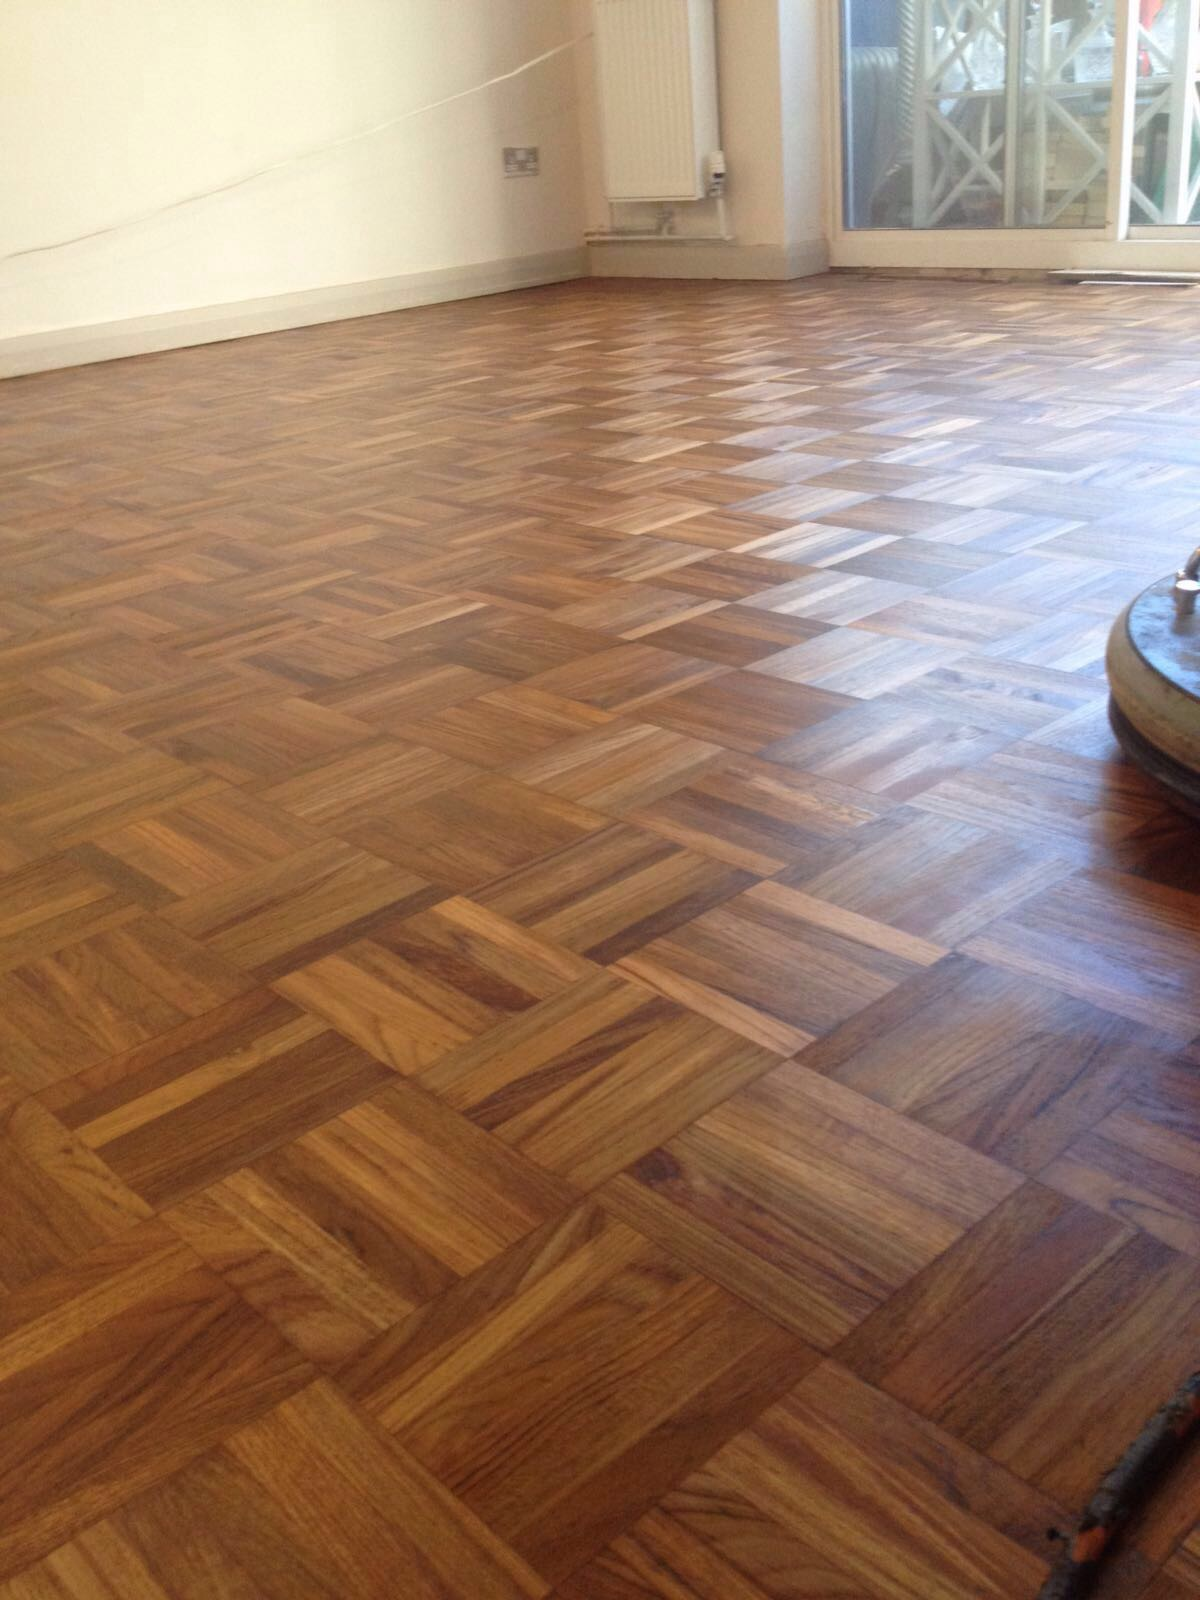 Teak floor sanding in london 100 dust free sanding 0208 for At floor or on floor